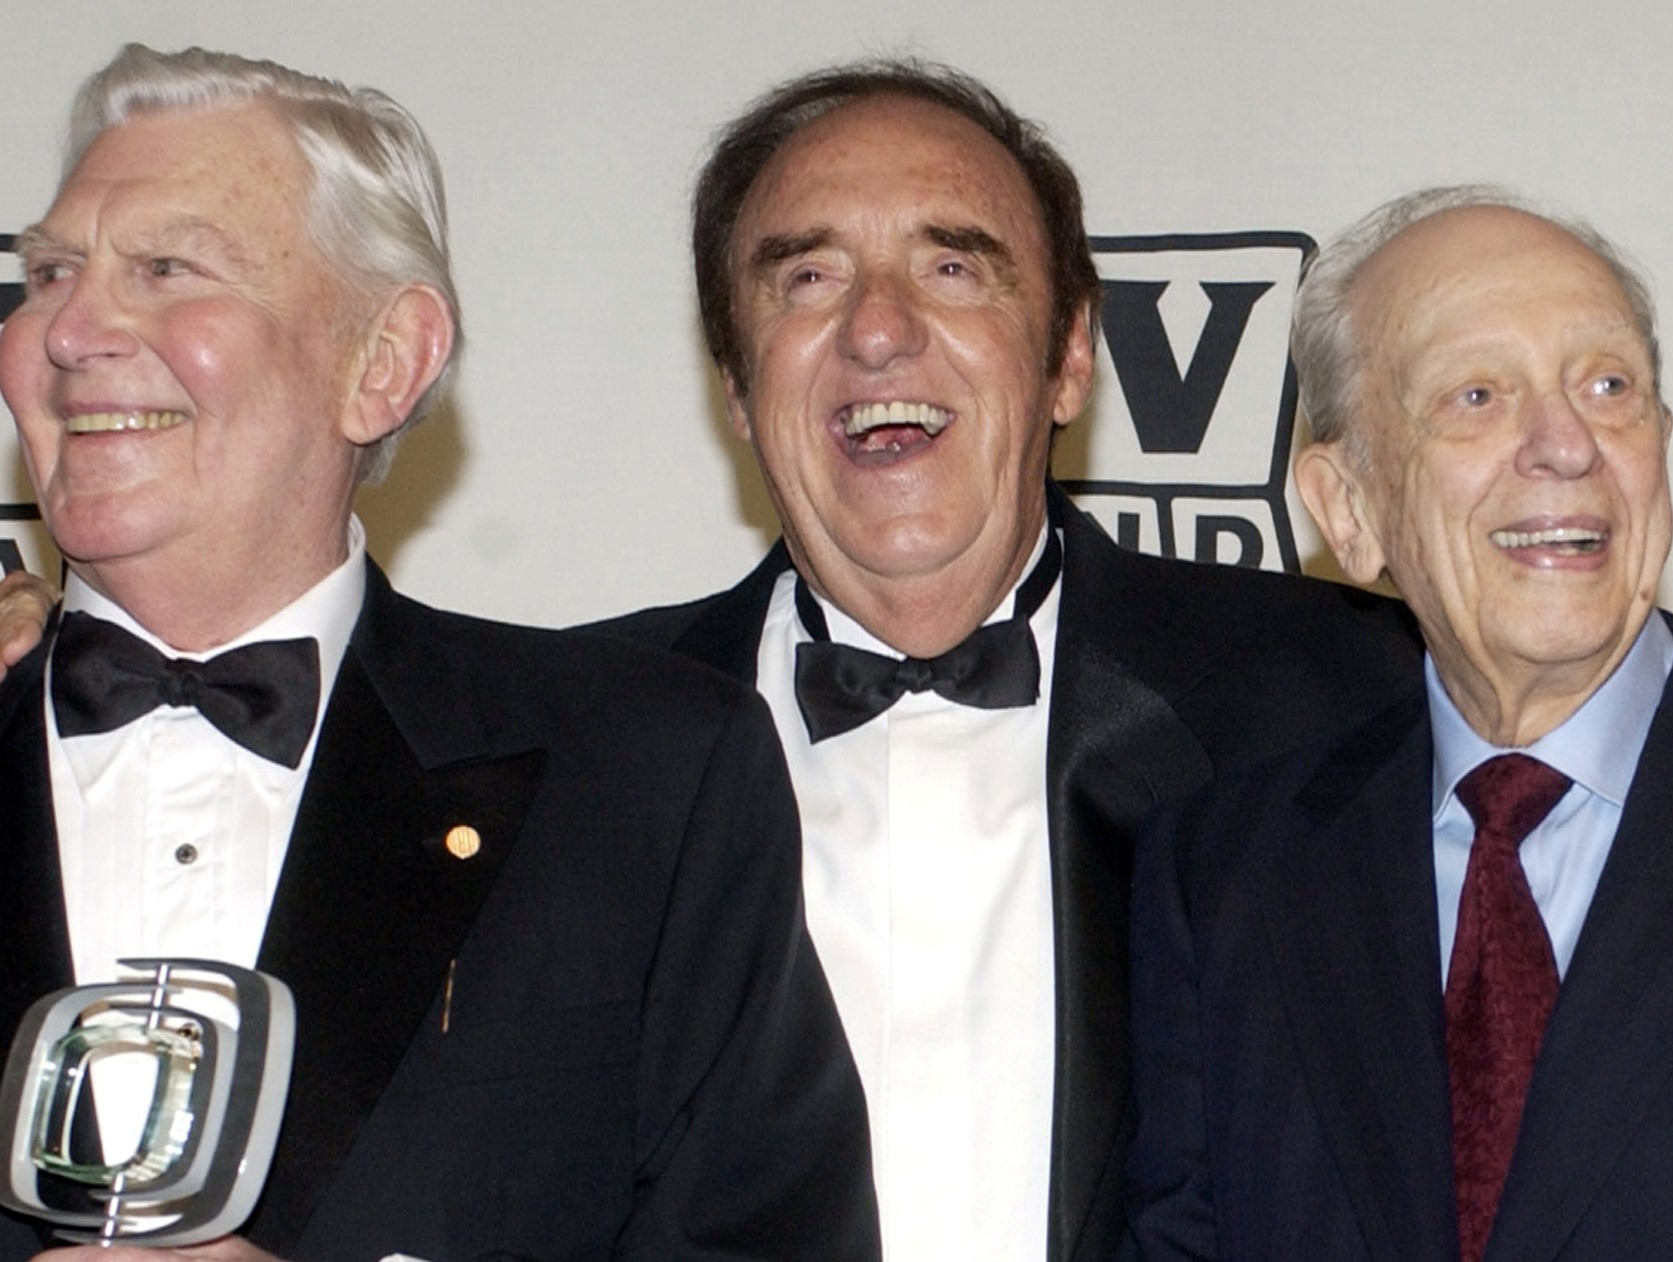 Andy Griffith, Jim Nabors and Don Knotts, cast members in 'The Andy Griffith Show', pose backstage after accepting the Legend Award during a taping of the second annual TV Land Awards in Hollywood, California, March 7, 2004. — Reuters pic